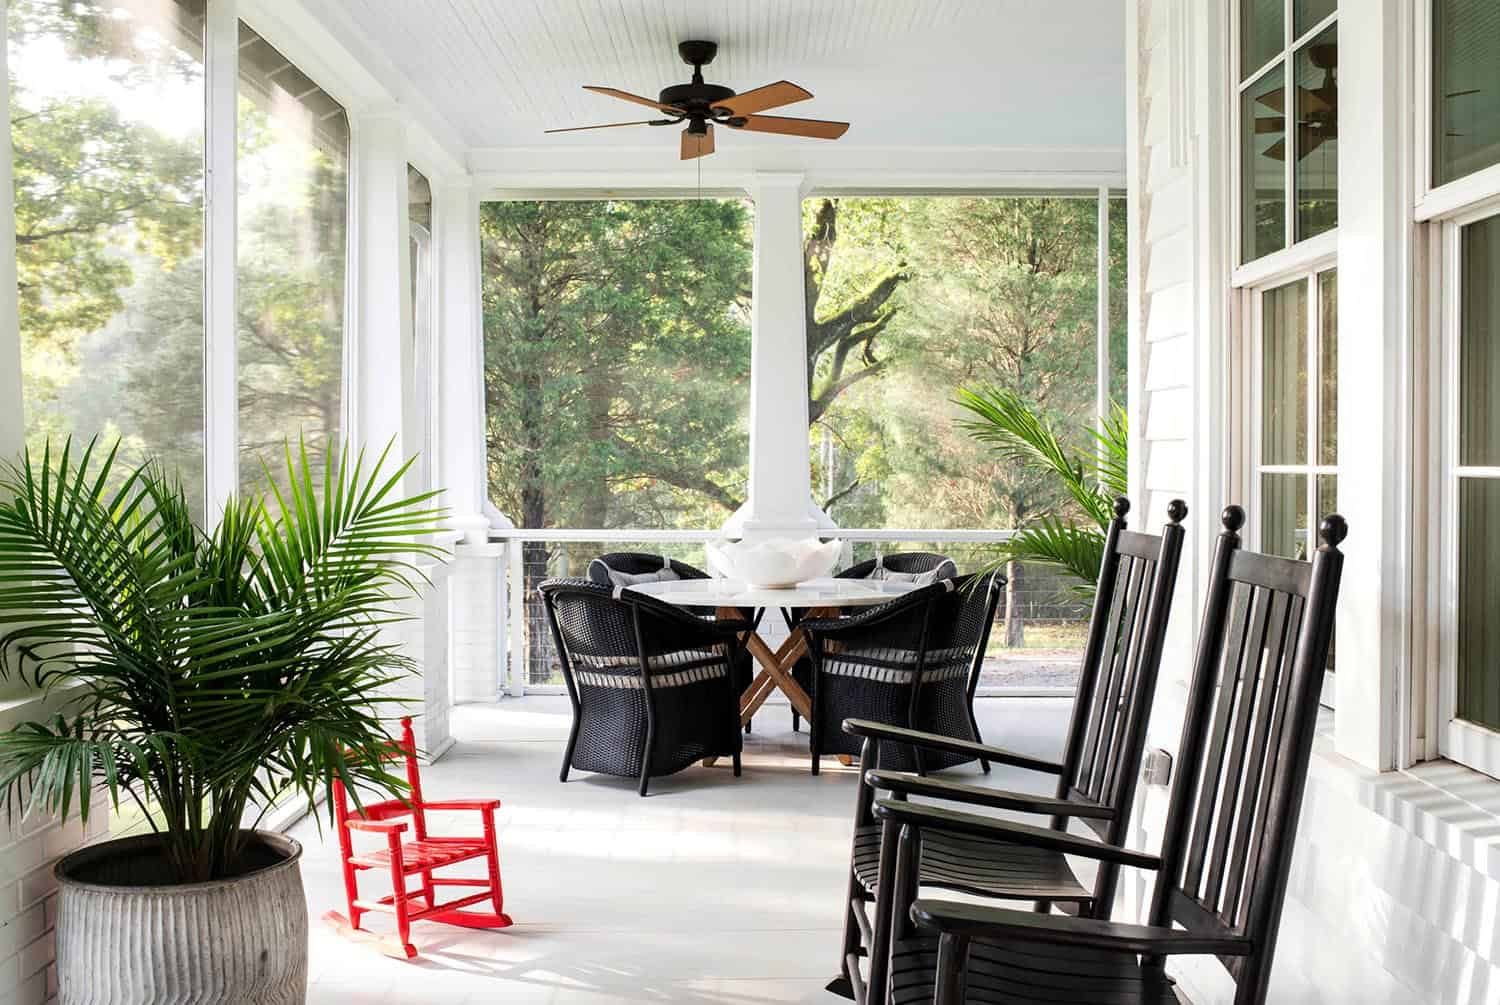 southern-style-screened-porch-ideas